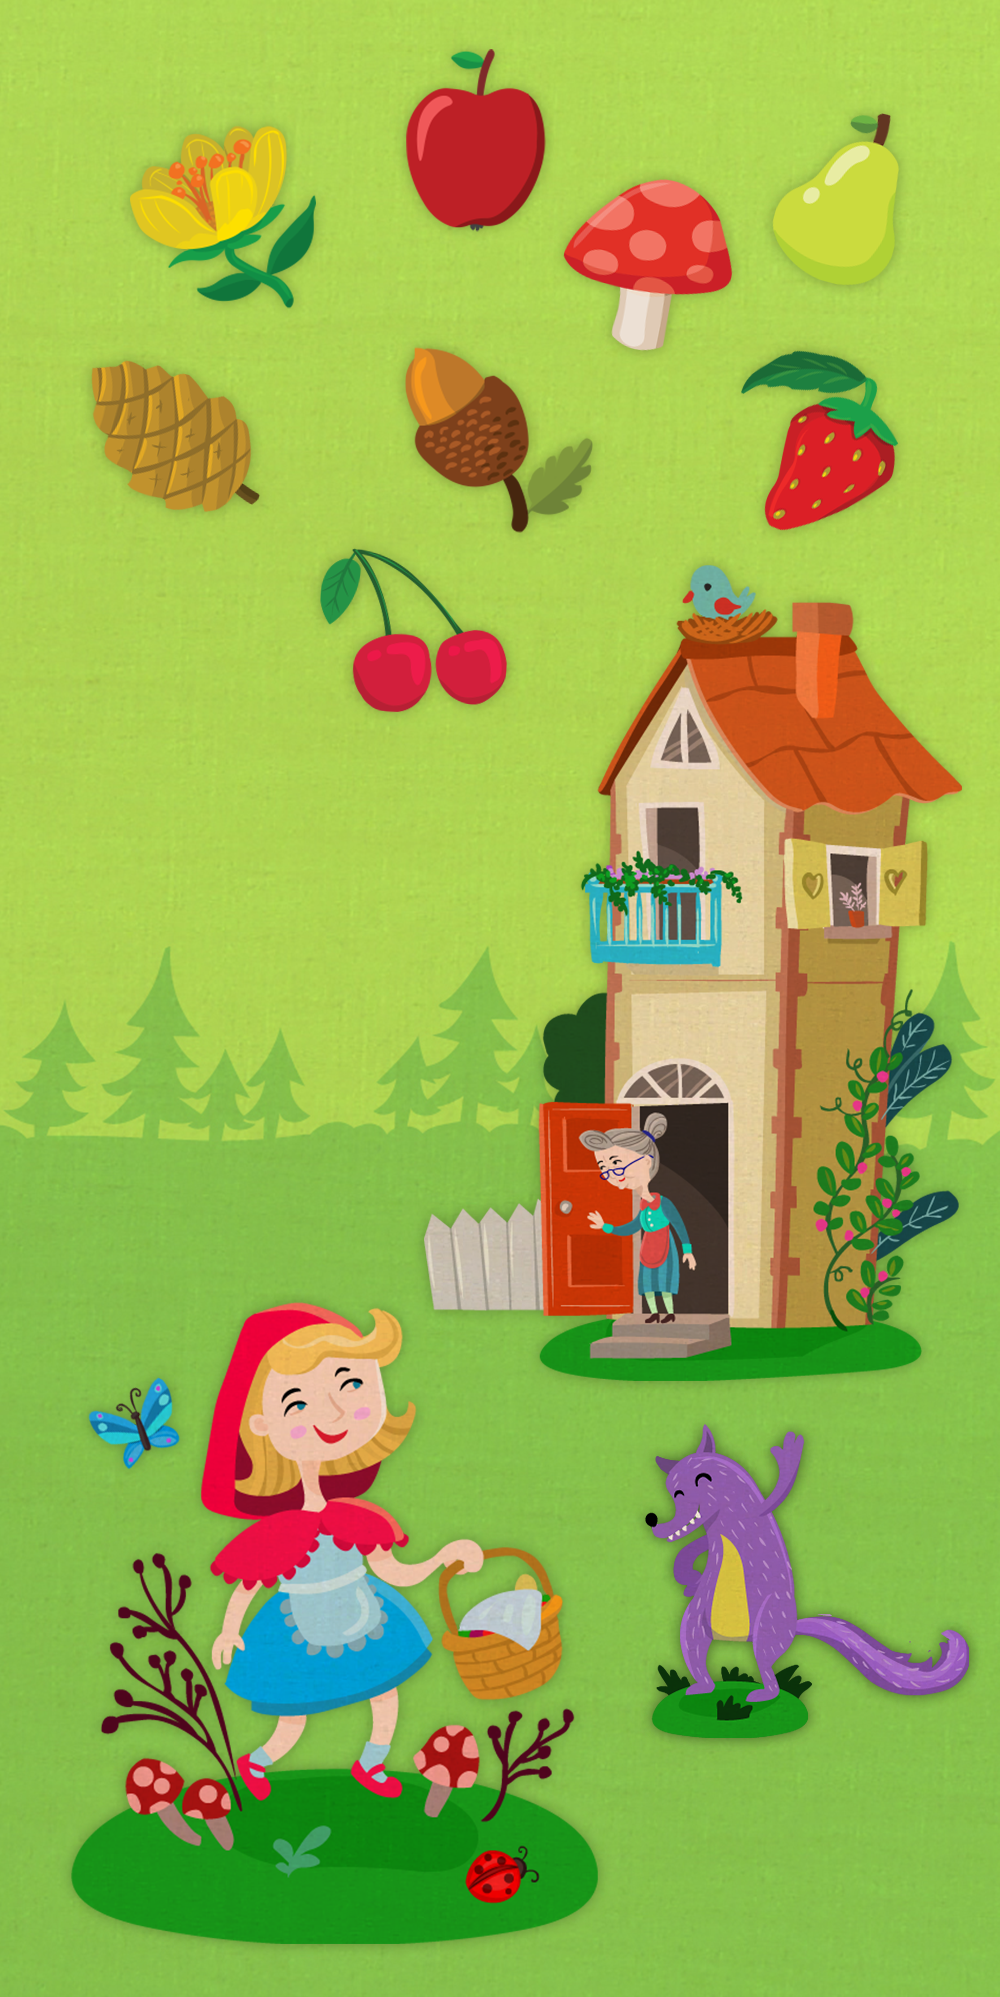 Fairy Tale Domino app illustrations